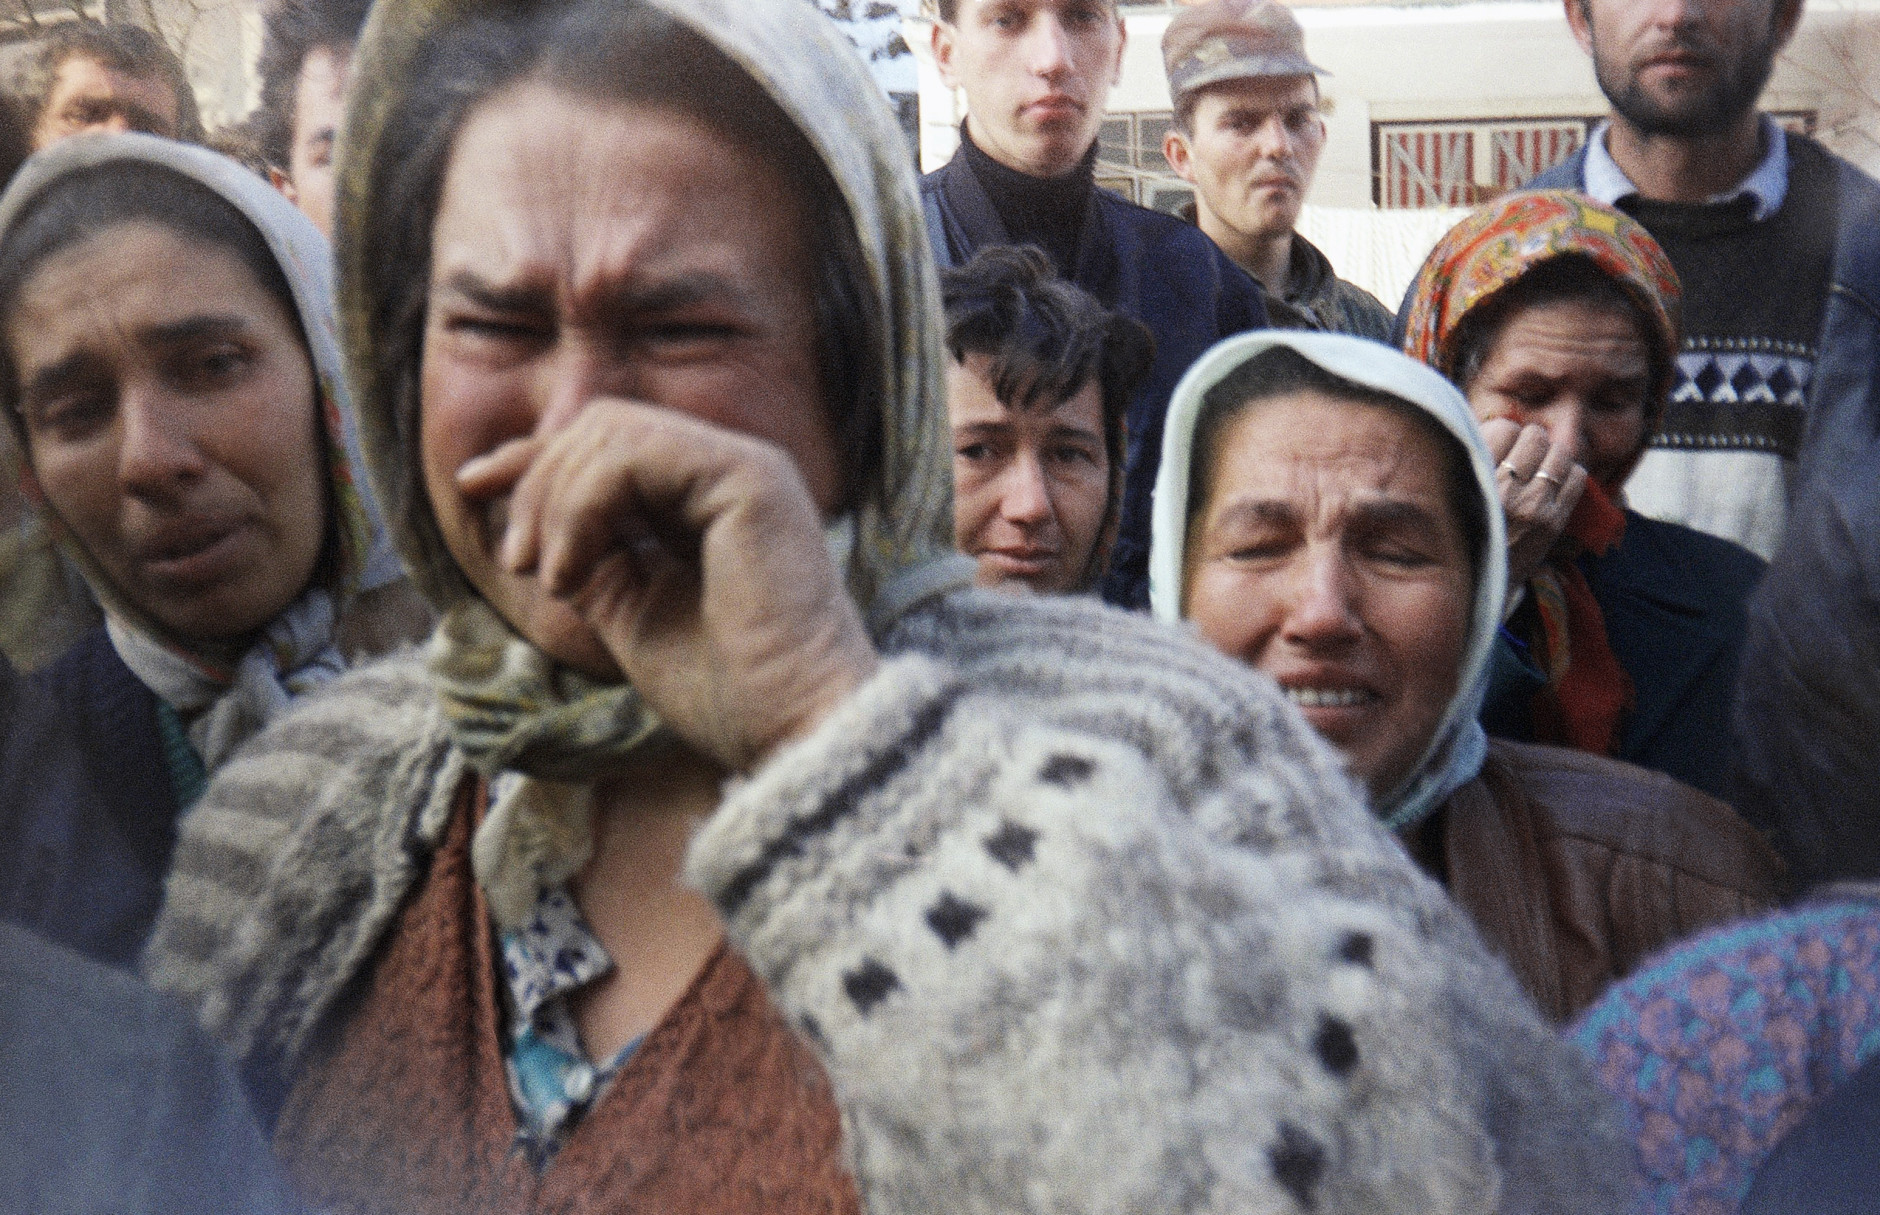 Muslim women trapped in the besieged town of Srebrenica vent out their fears during a gathering in Srebrenica, Bosnia and Herzegovina on March 11, 1993. Unidentified woman at center is a refugee from Vlasenica, Eastern Bosnia, trapped in Srebenica since early on March. (AP Photo/Haris Nezirovic)